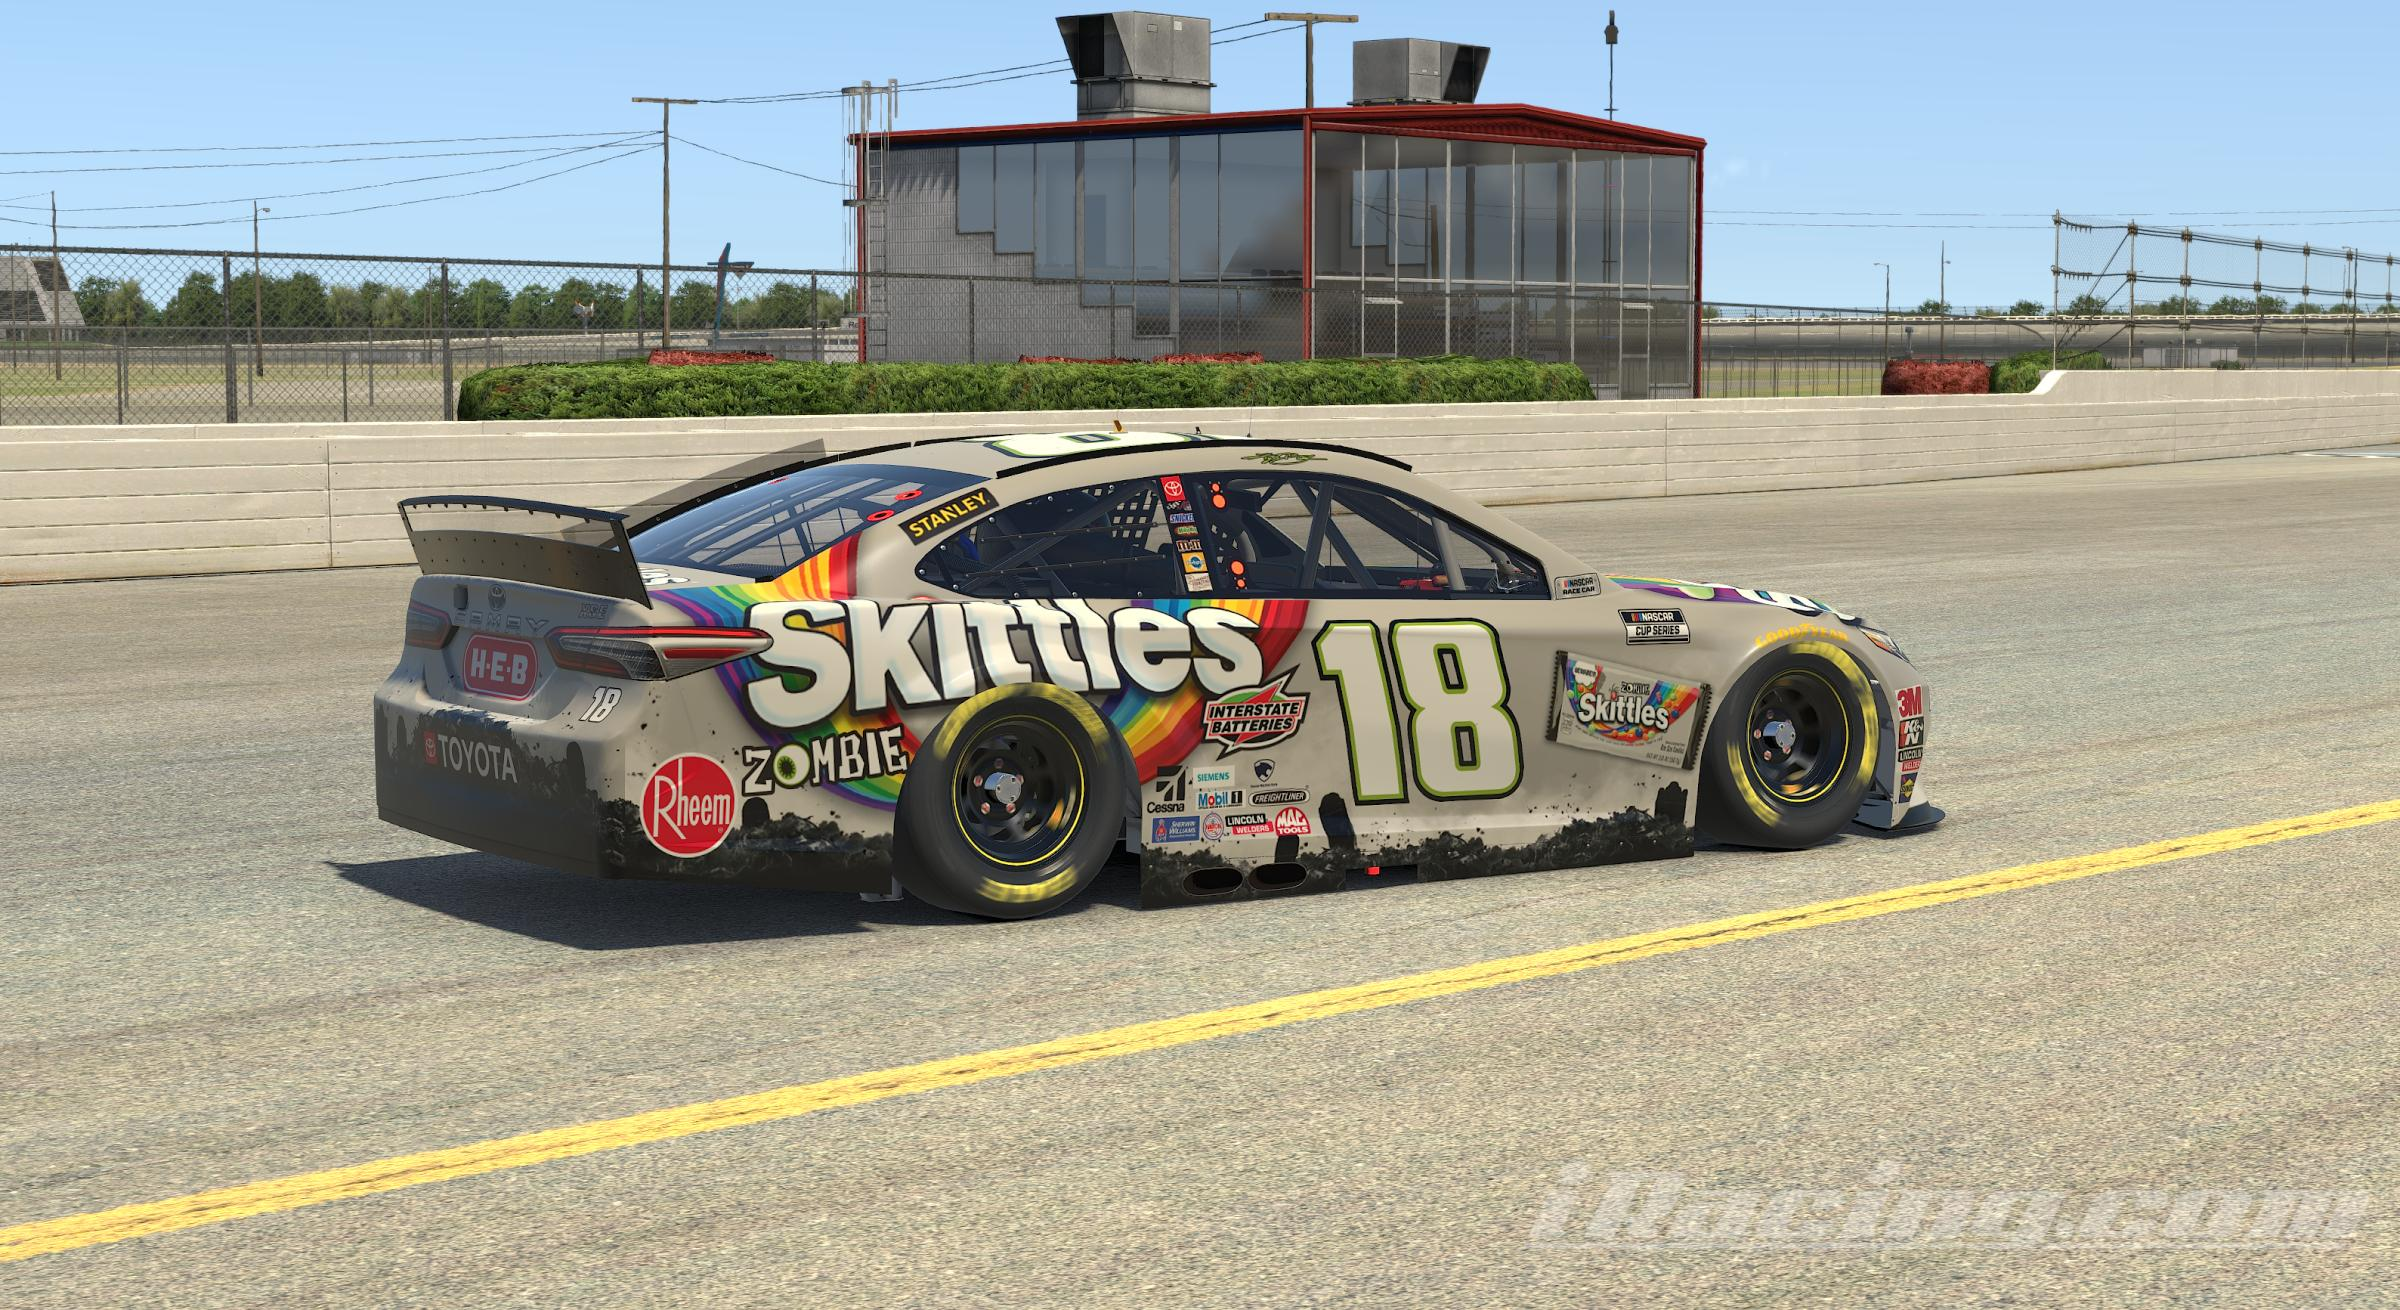 Preview of 2020 Kyle Busch Skittles Zombie Camry No Num by Brantley Roden